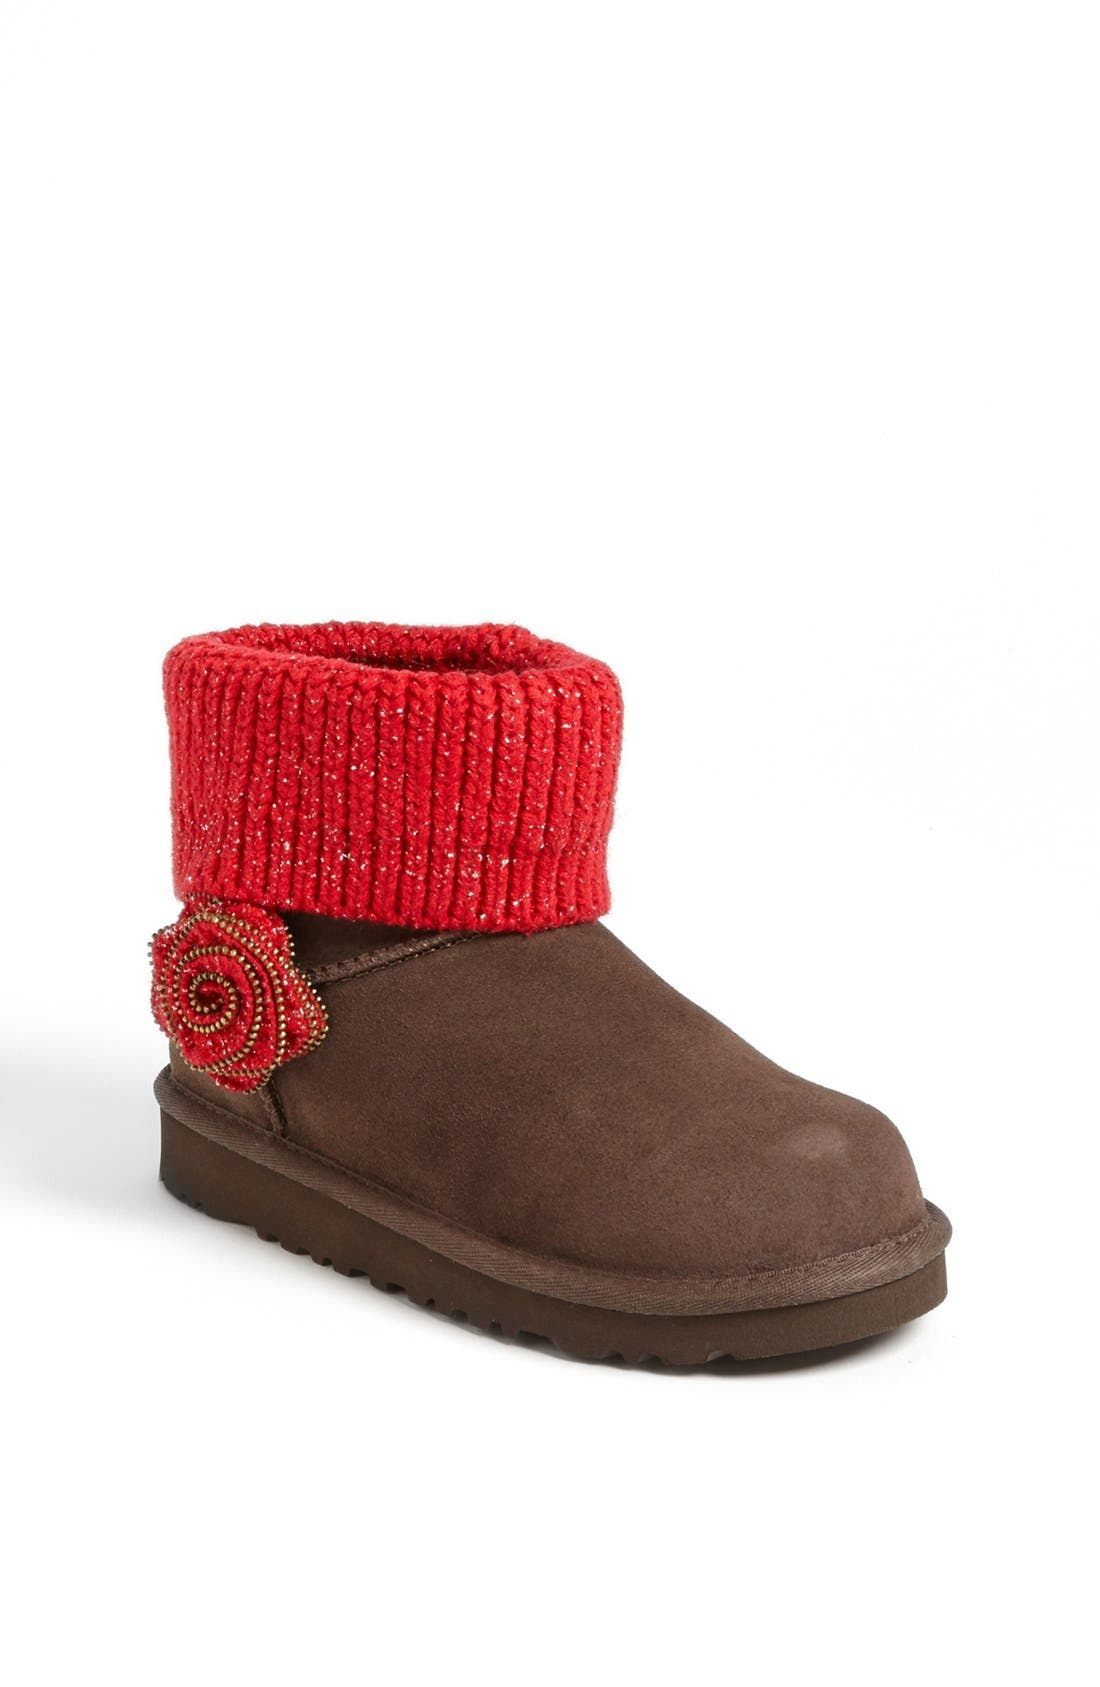 Australia 'Southern Belle' Boot,                             Main thumbnail 1, color,                             Chocolate